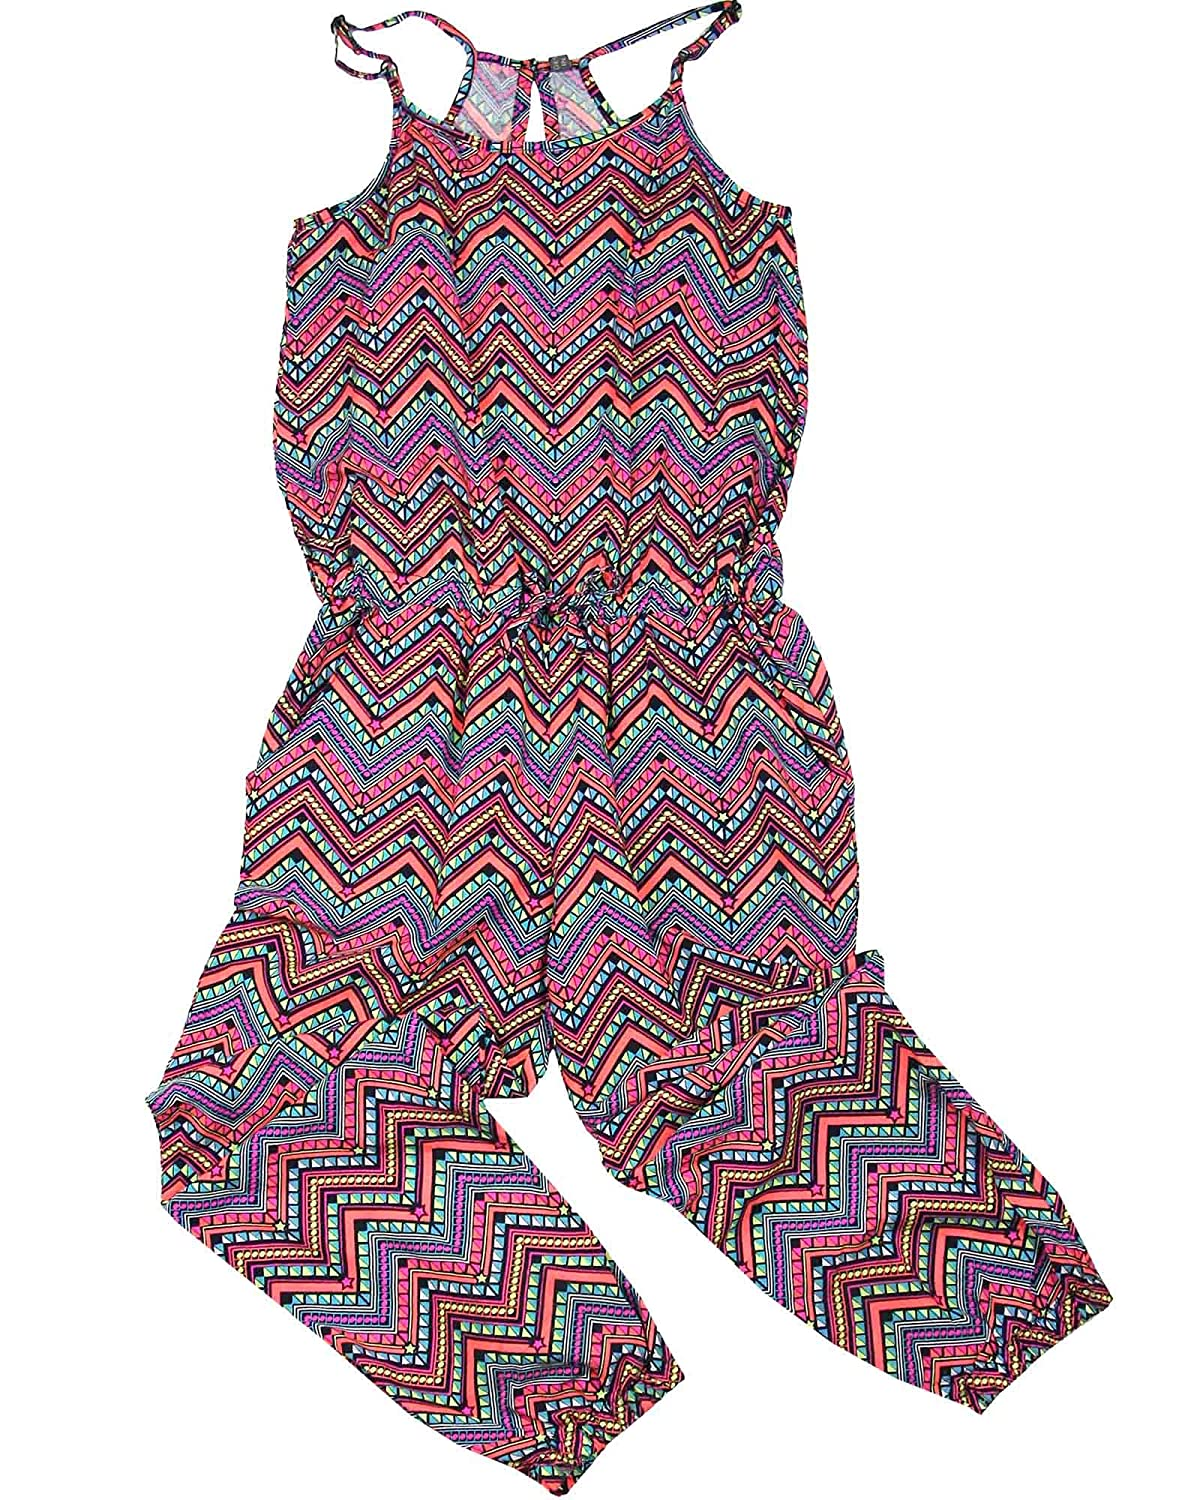 Losan Junior Girls Jumpsuit in Geometric Print Sizes 8-16